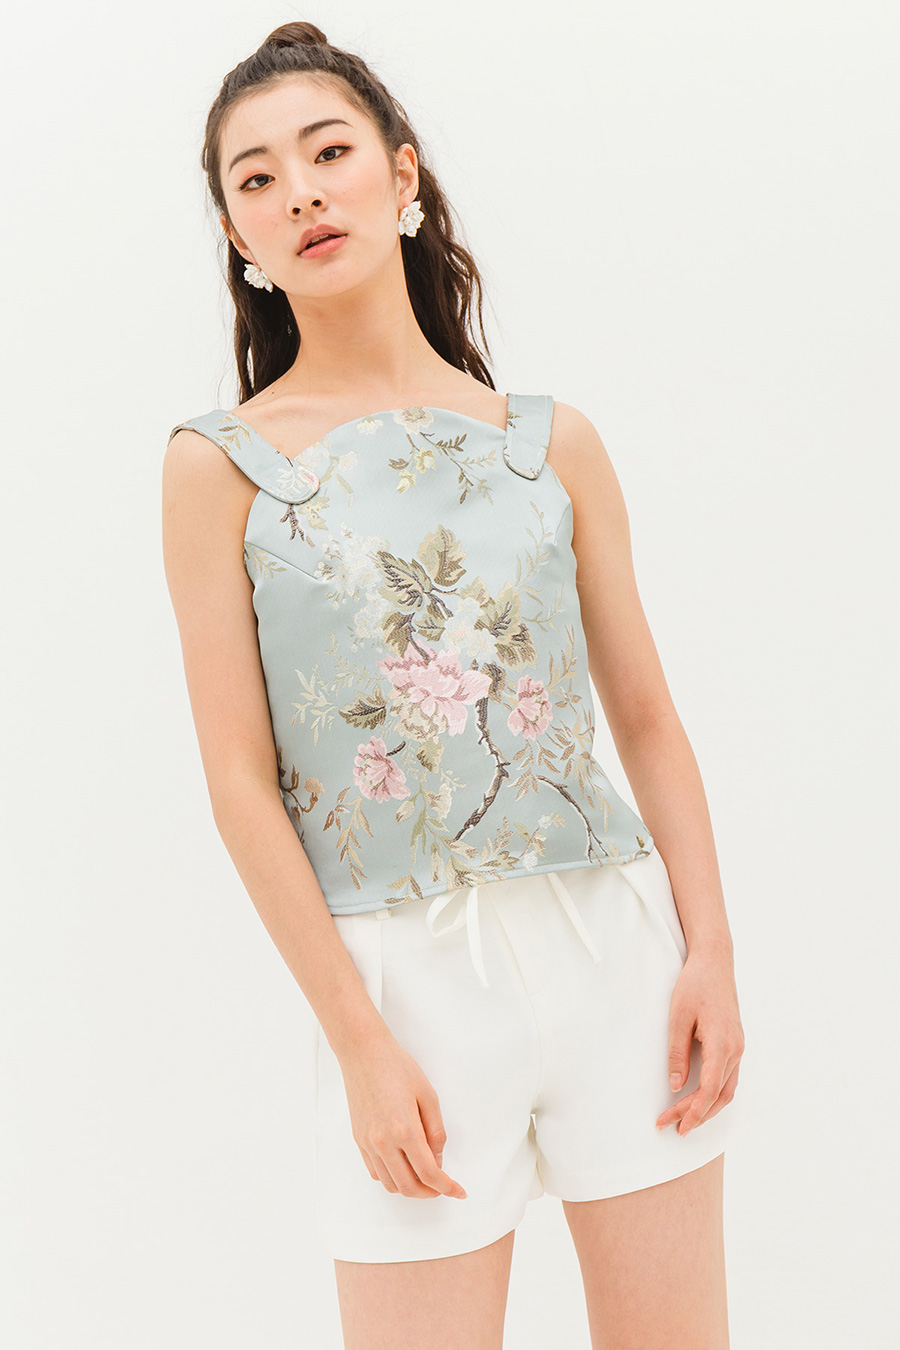 *SALE* MIWU TOP - BLOSSOM [BY MODPARADE]